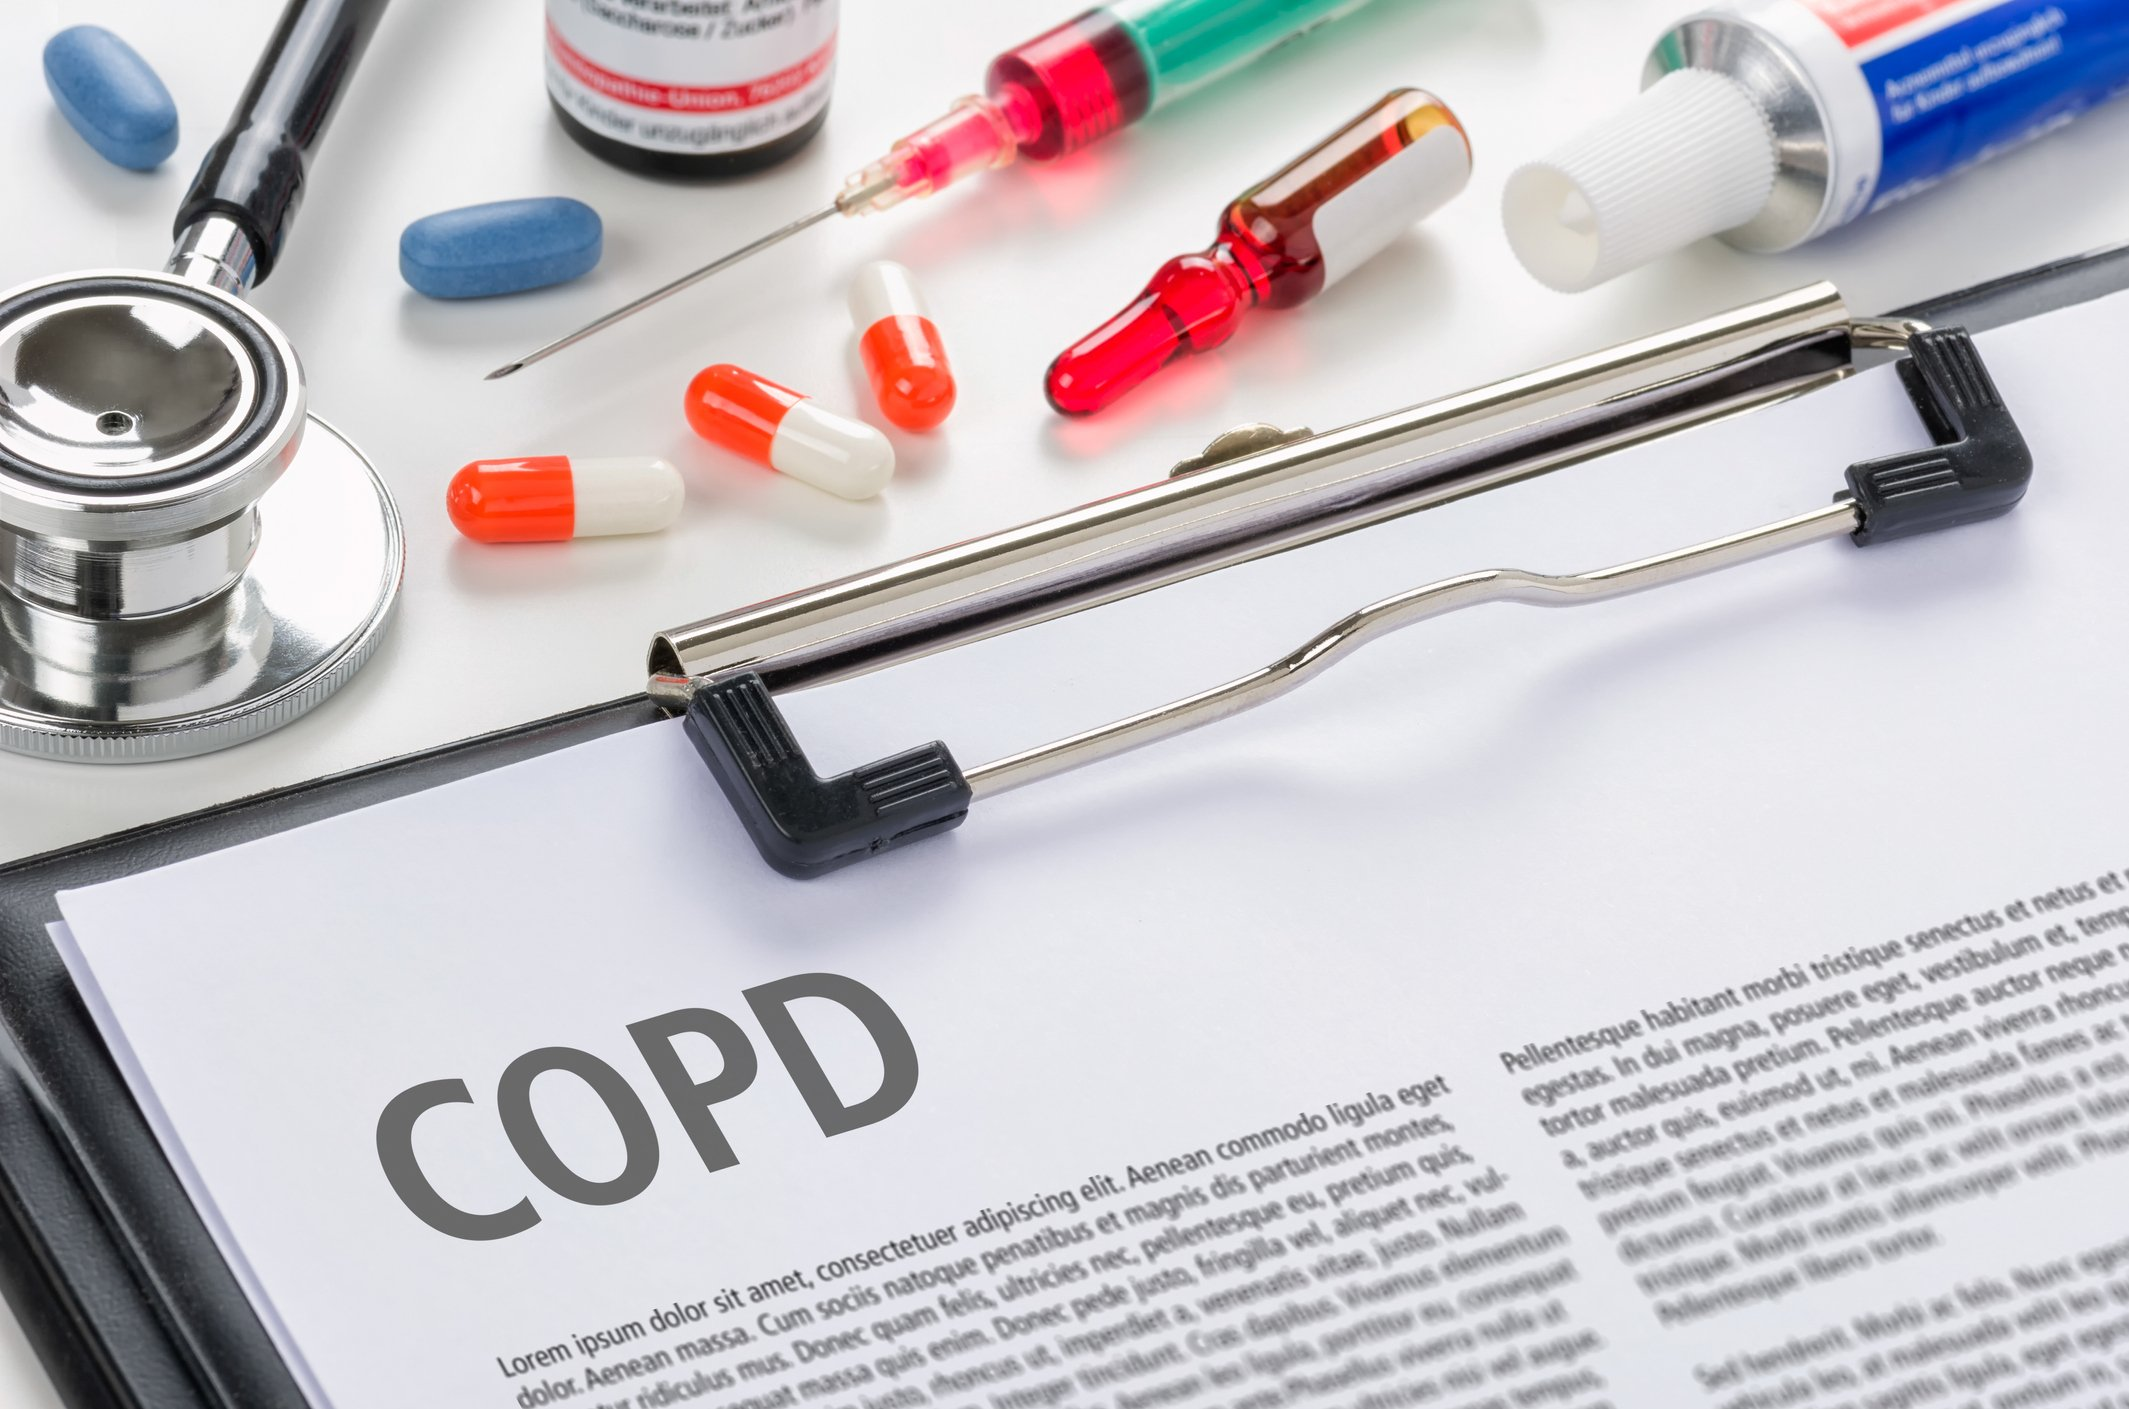 Suctioning a Patient with COPD